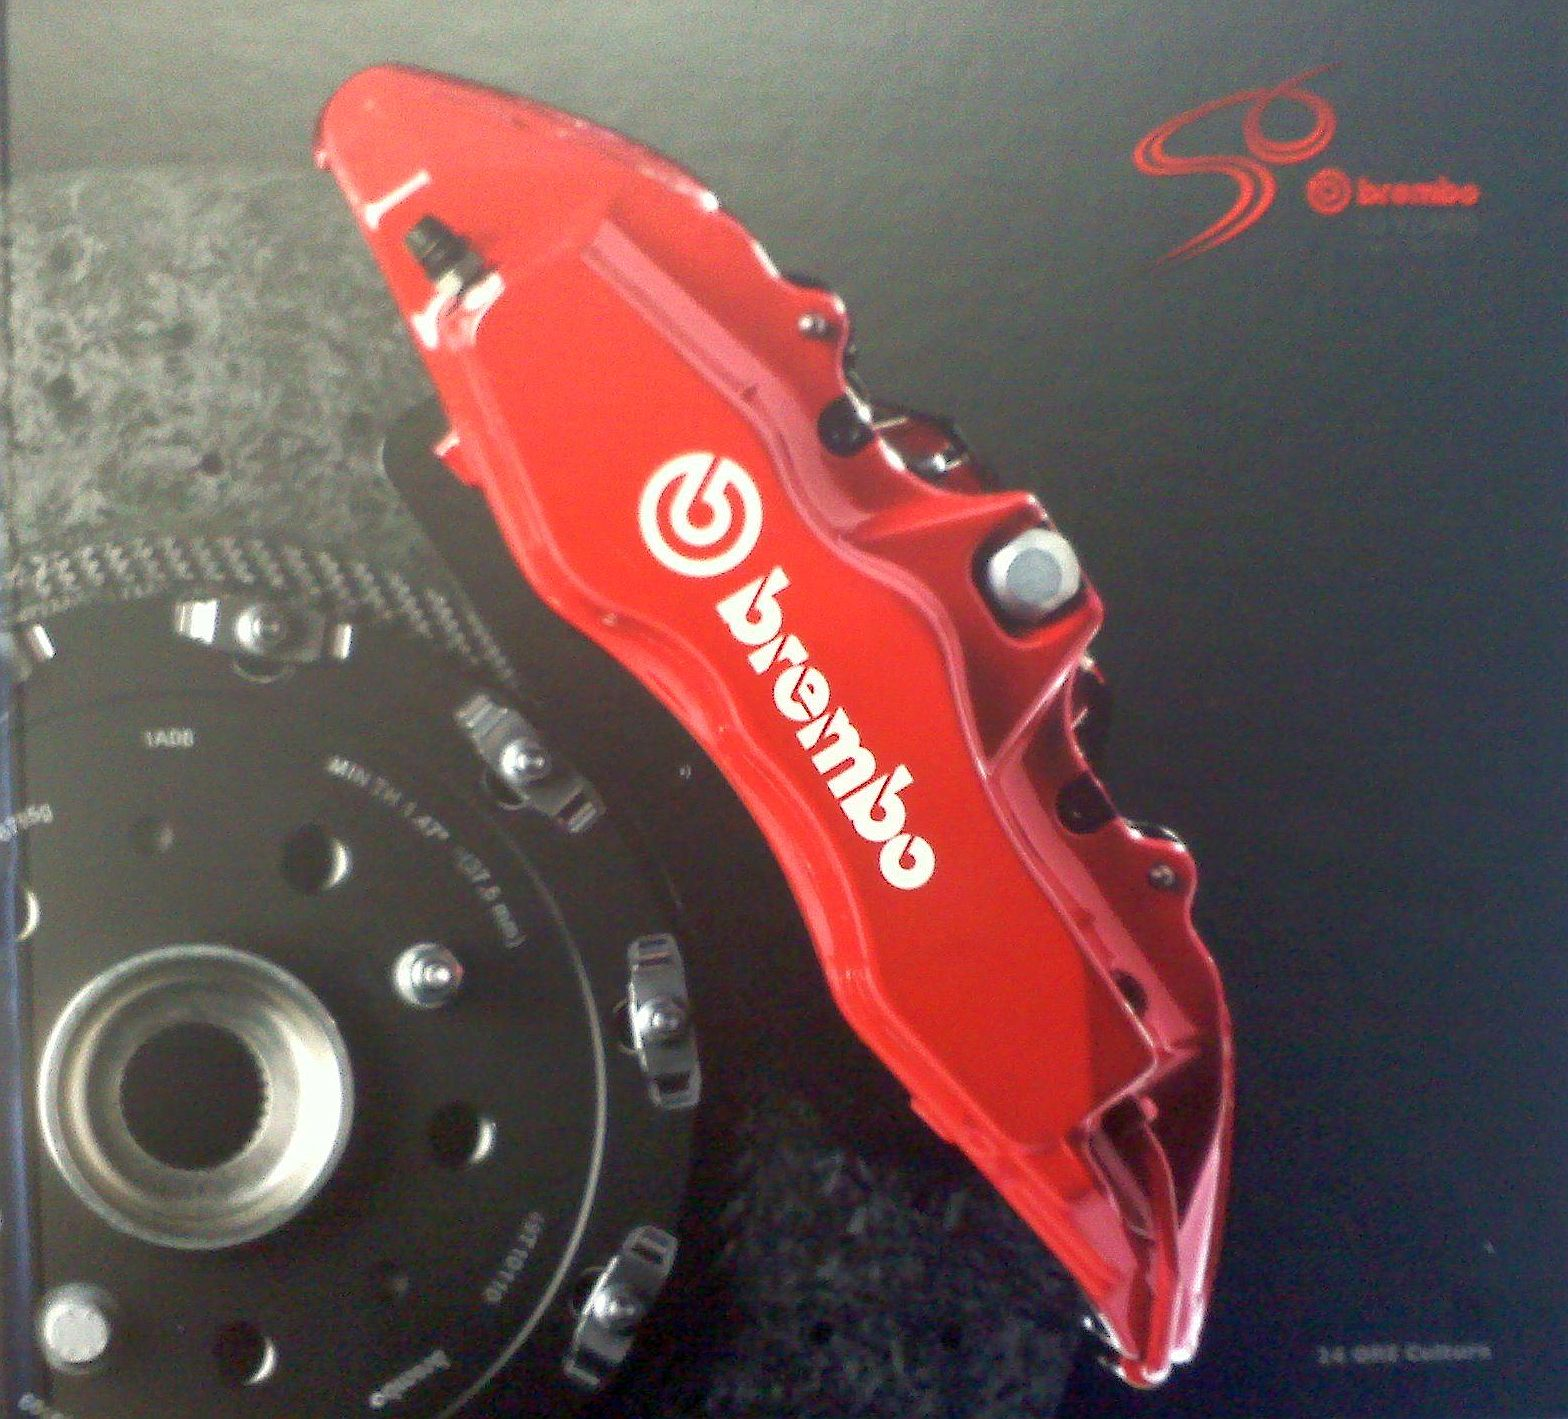 What do cars and coffee tables have in common? Brembo